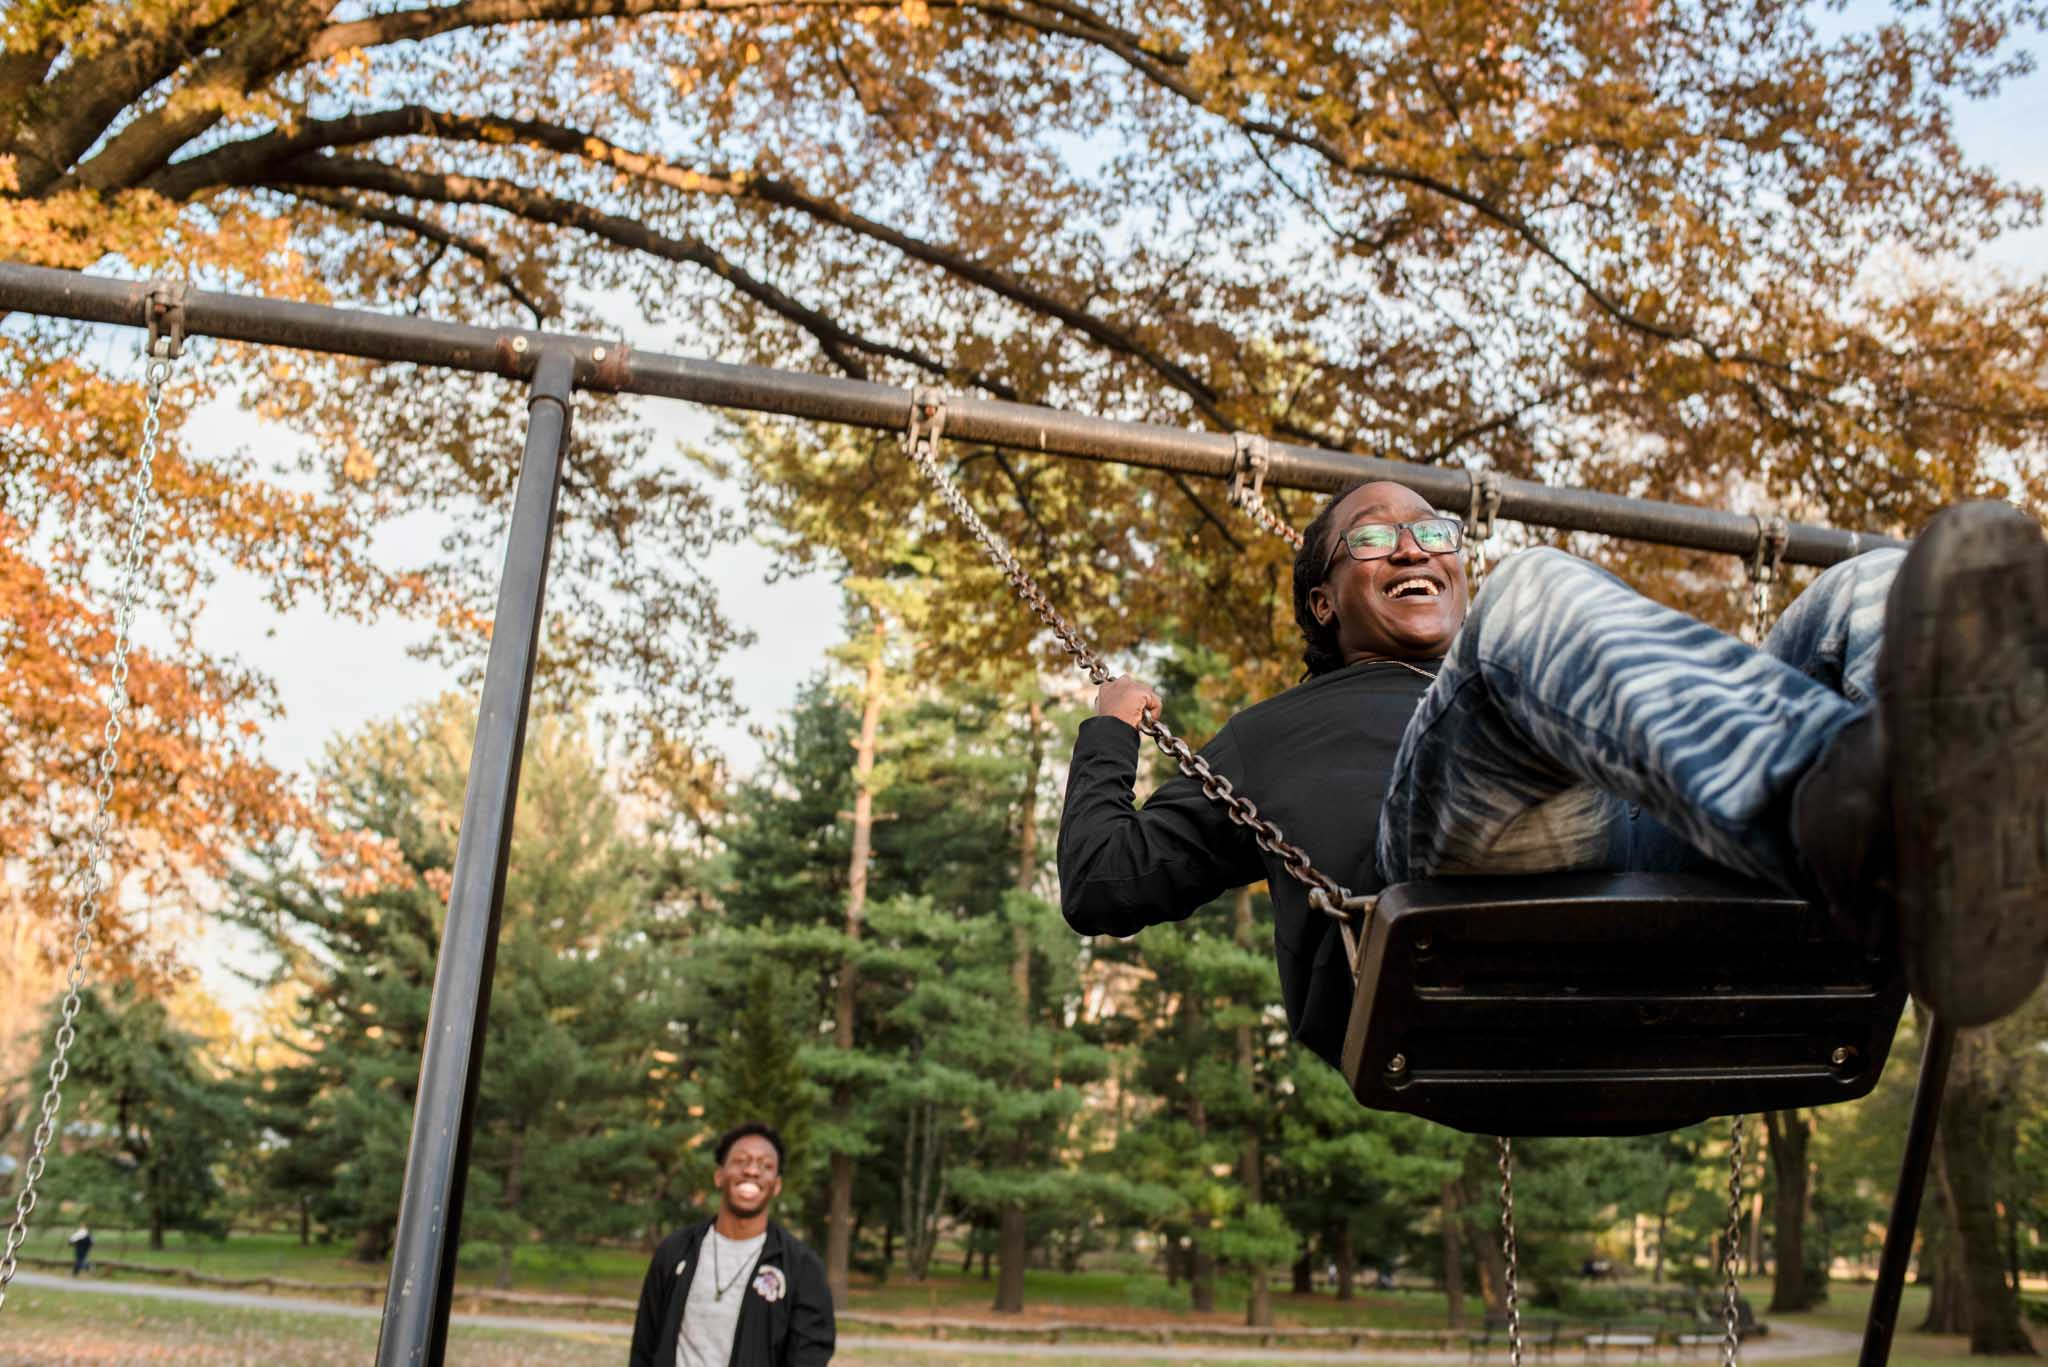 Student swings on swing set in Central Park.